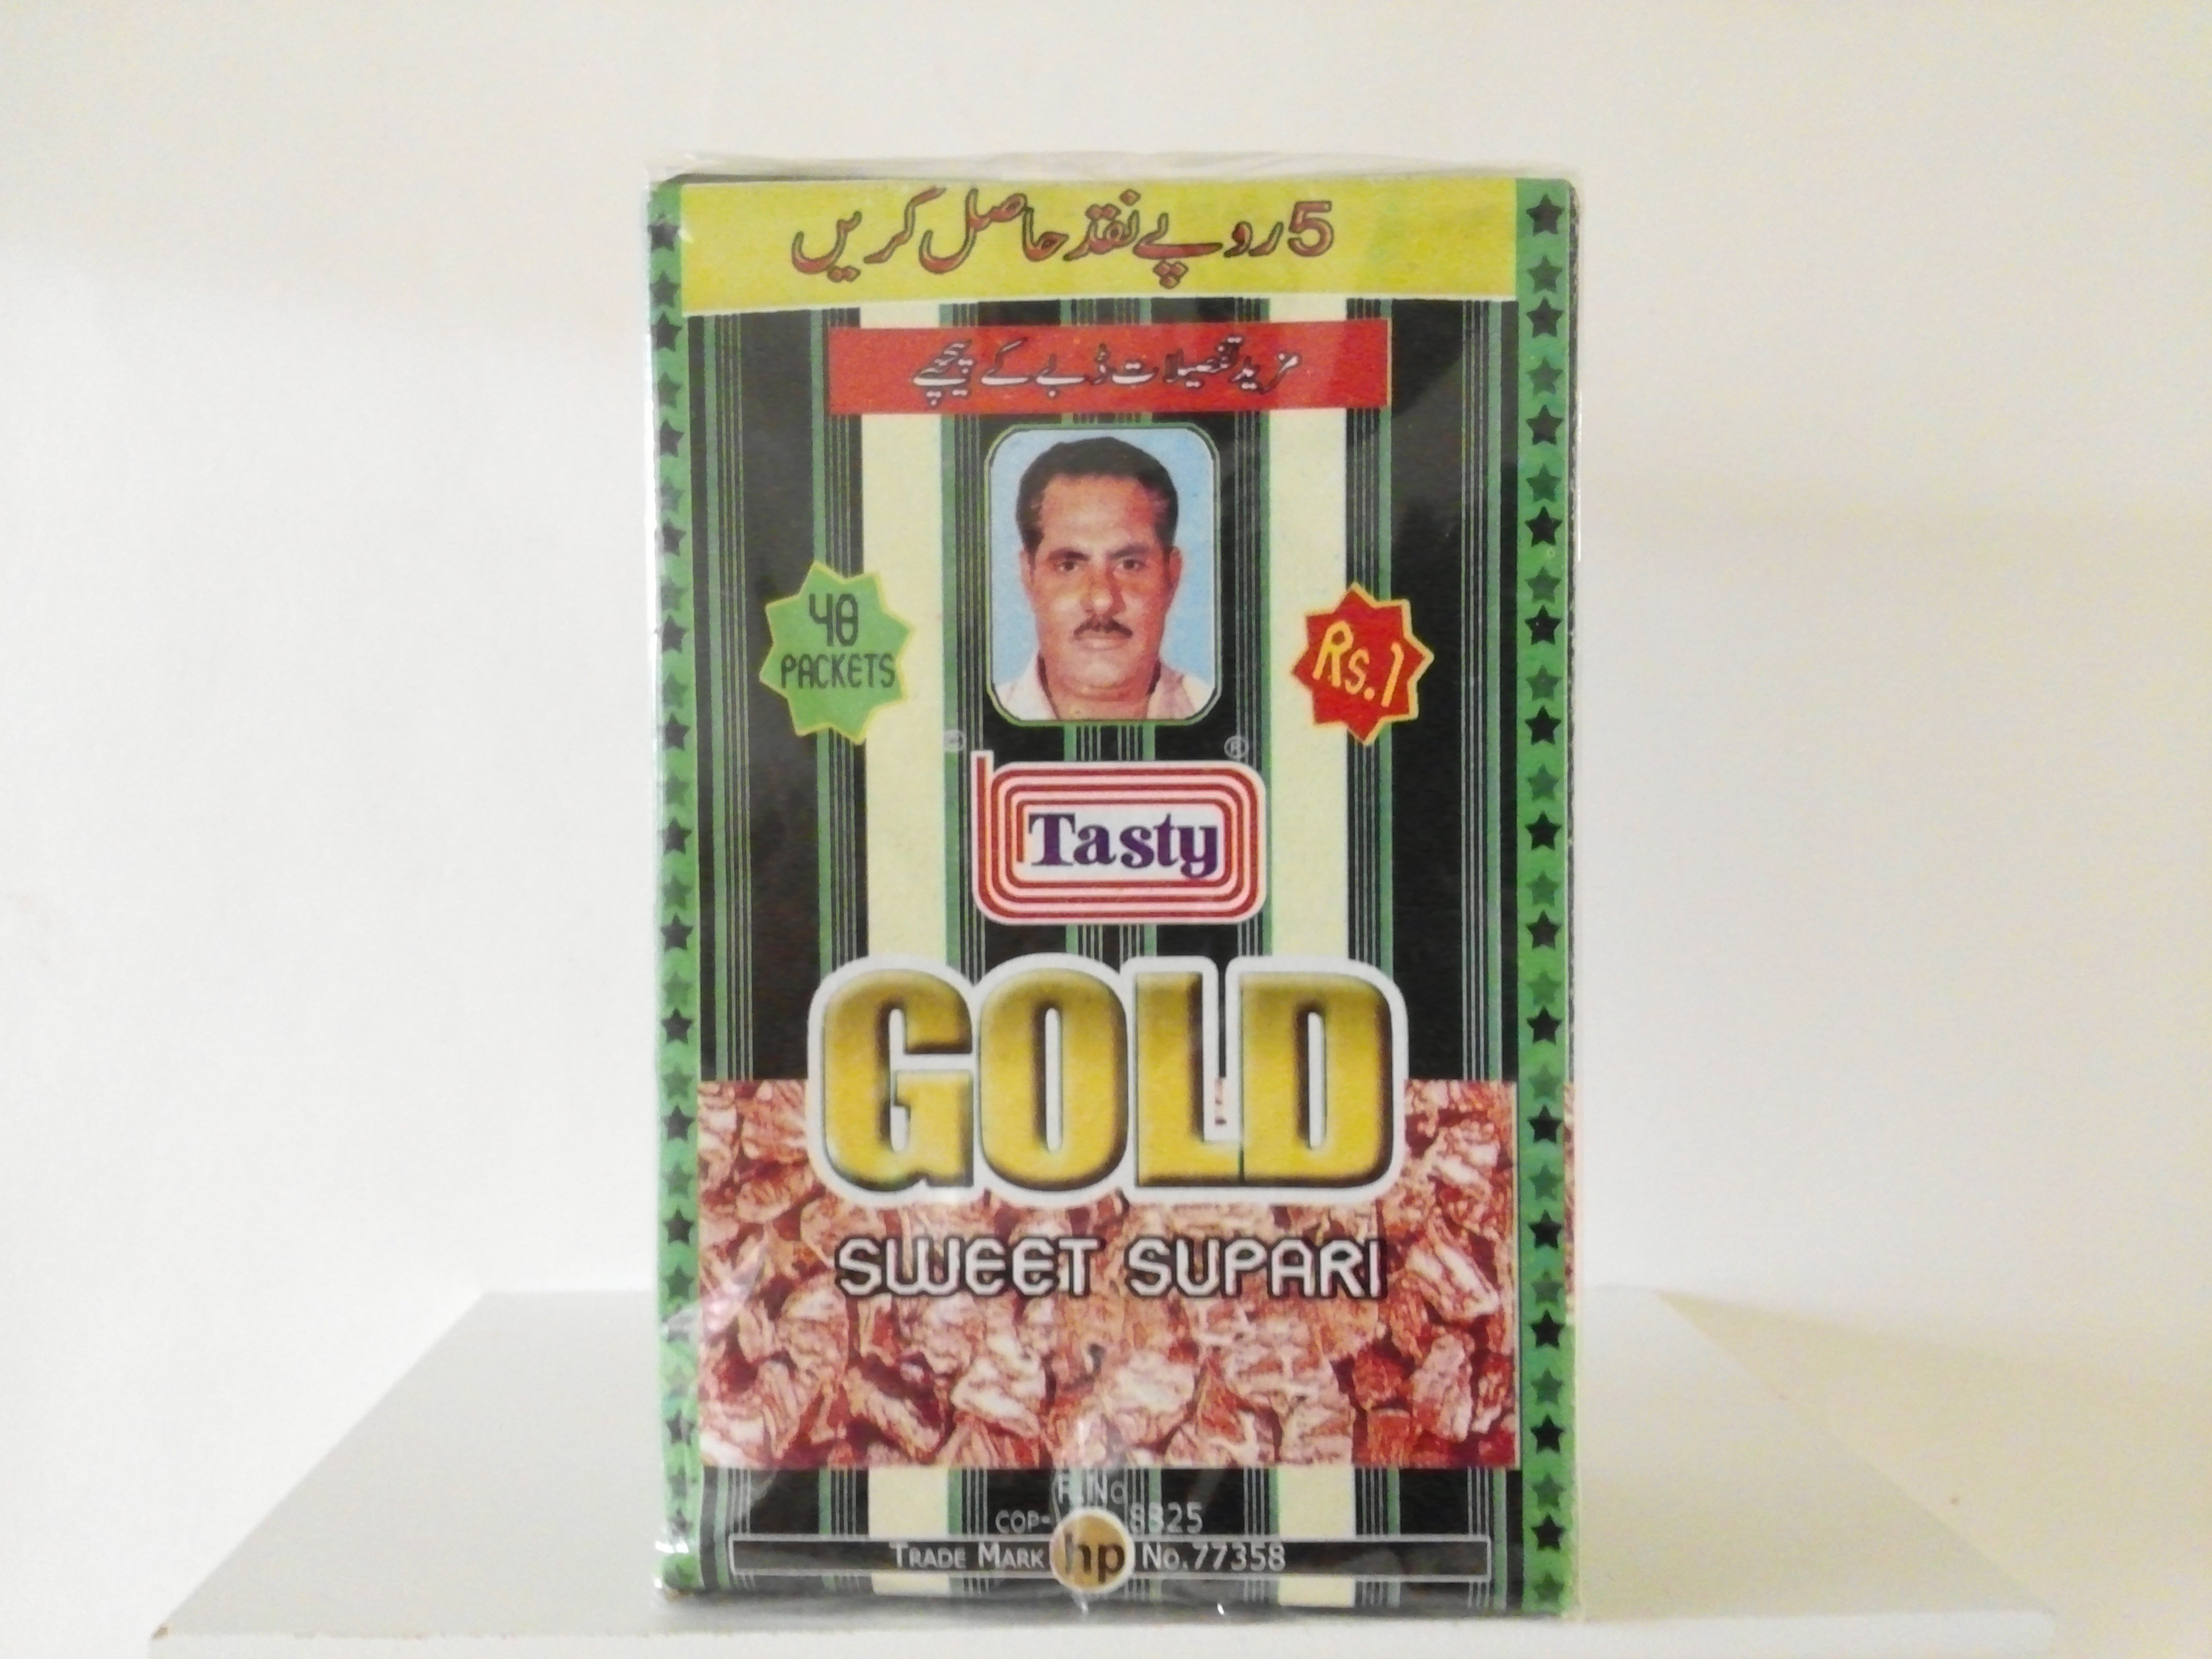 Tasty Gold Sweet Supari 48 Pack